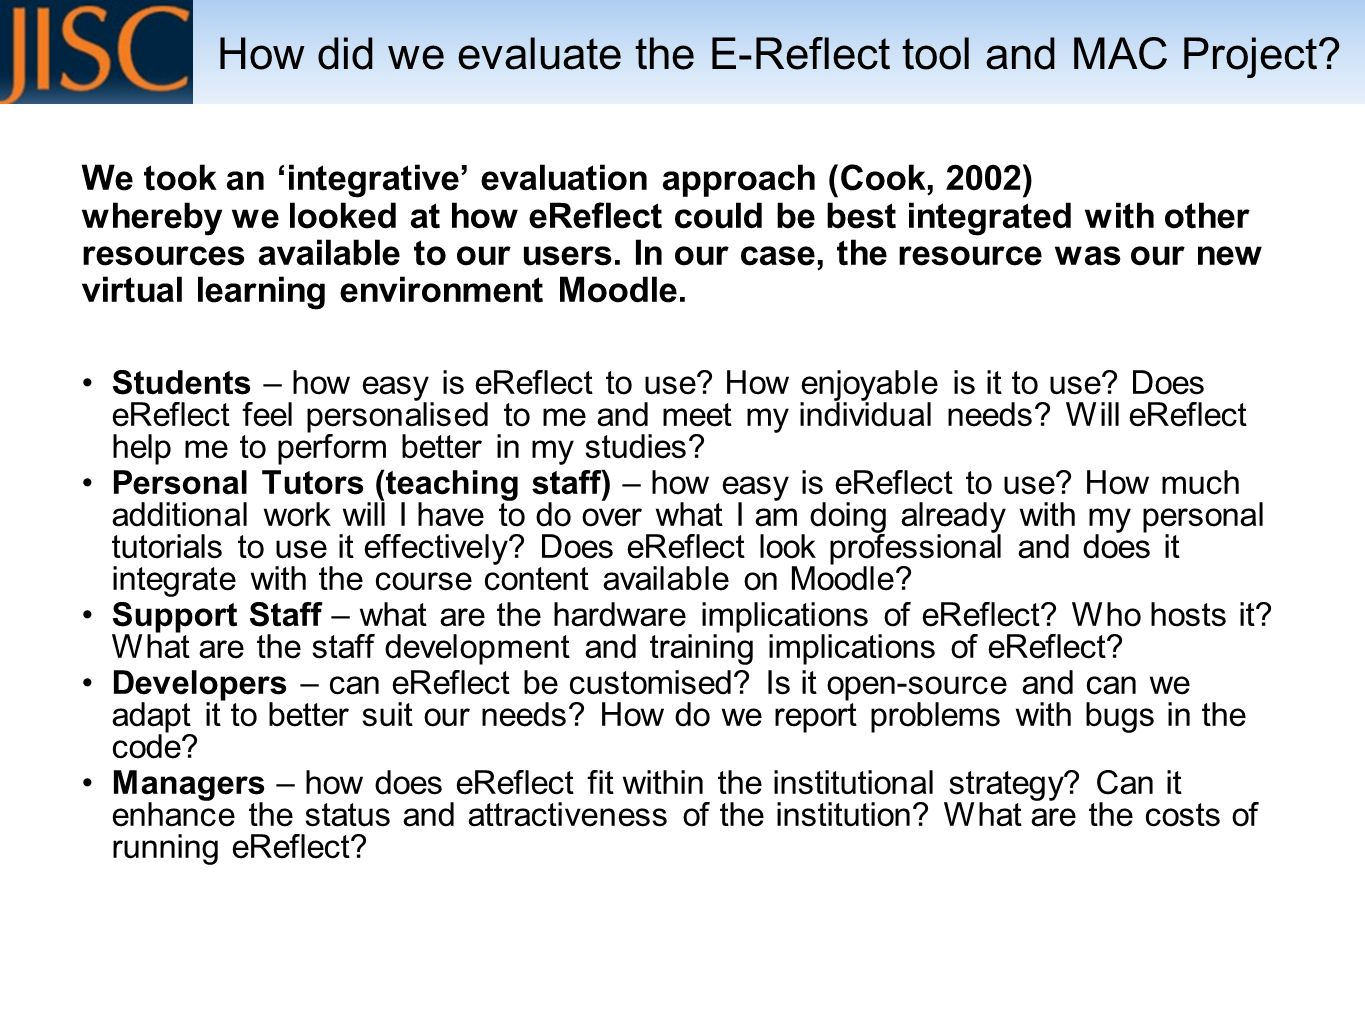 We took an integrative evaluation approach (Cook, 2002) whereby we looked at how eReflect could be best integrated with other resources available to our users.